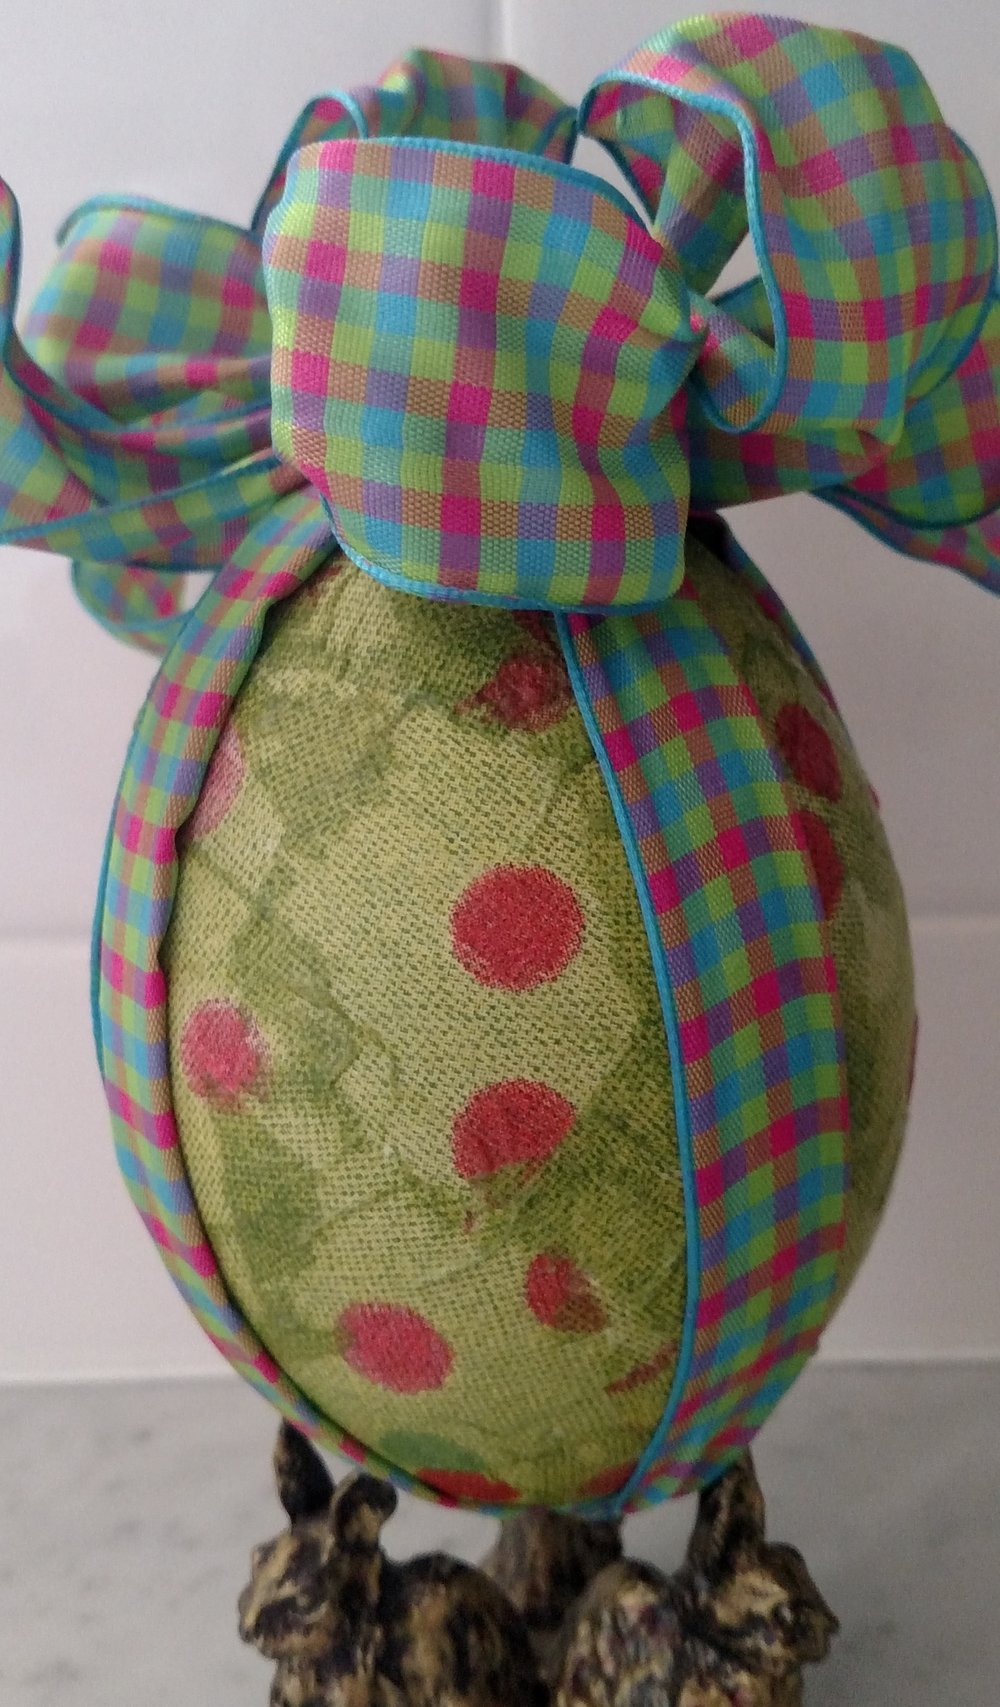 Green Decoupage Egg with Pink Polka Dots.jpg